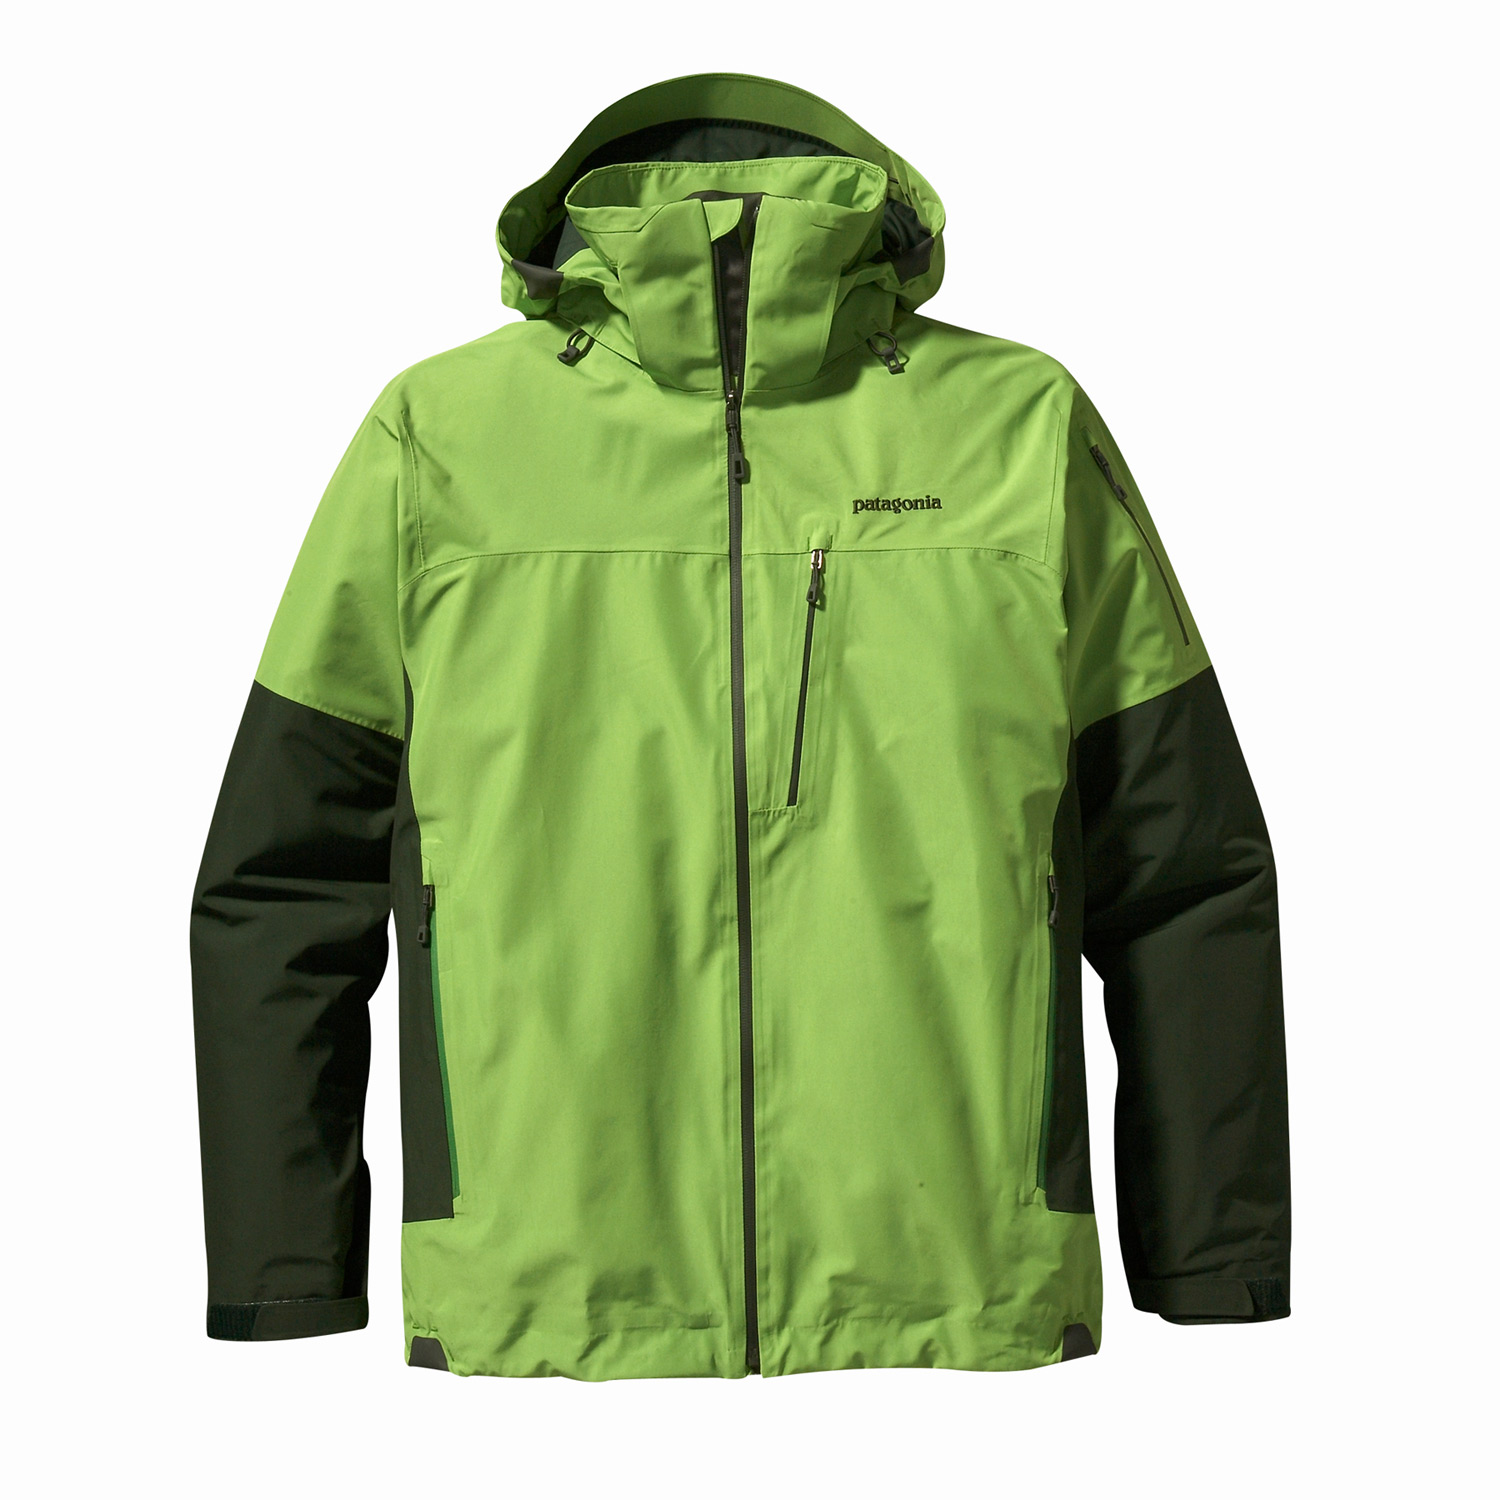 Ski The Patagonia Powder Bowl jacket is Patagonia's premium snowsports jacket for the user who plans to ride all day. The shell jacket, engineered with GORE-TEX   Performance Shell uses the most durable nylon face fabrics available. The 2-layer   construction uses a GORE-TEX   membrane, which is bonded to the outer material and protected on the inside by a separate lining for better wear, greater comfort, and waterproof/breathable protectionKey Features of the Patagonia Powder Bowl Ski Jacket: Durable 2-layer polyester shell with waterproof/breathable GORE-TEX  Performance Shell and a Deluge DWR (durable water repellent  finish, keeps you dry during a heavy snowstorm; mesh lining wicks away moisture Removable, helmet-compatible, 2-way-adjustable hood with laminated visor for optimal visibility in bad conditions; tall collar protects neck and face, even with the hood down Touch Point System embeds cord locks in the hood and hem to offer quick adjustability and seal out snow (patented  Slim Zip installation with watertight coated zippers for reduced zipper bulk and weight Pit zips quickly release heat; pleated gusset comfortably secures cuff, over or under gloves, with less bulk Powder skirt is adjustable and fully featured; webbing loops connect to any Patagonia  Ski/Snowboard Pants to keep the snow out and the skirt down Pockets: Two handwarmers, one chest, one bicep, two interior drop-ins and one interior zippered pocket with key clip; includes secure media pocket with cable routing Regular fit (36.3 oz  1029 g Fabric: Shell: 2-layer, 4.3-oz 150-denier 100% polyester with waterproof/breathable GORE-TEX Performance Shell and a Deluge DWR finish. Lining: Torso: 100% brushed polyester mesh; sleeves: 100% polyester mesh; powder skirt and hood: 2-oz 100% polyester plain weave - $219.95